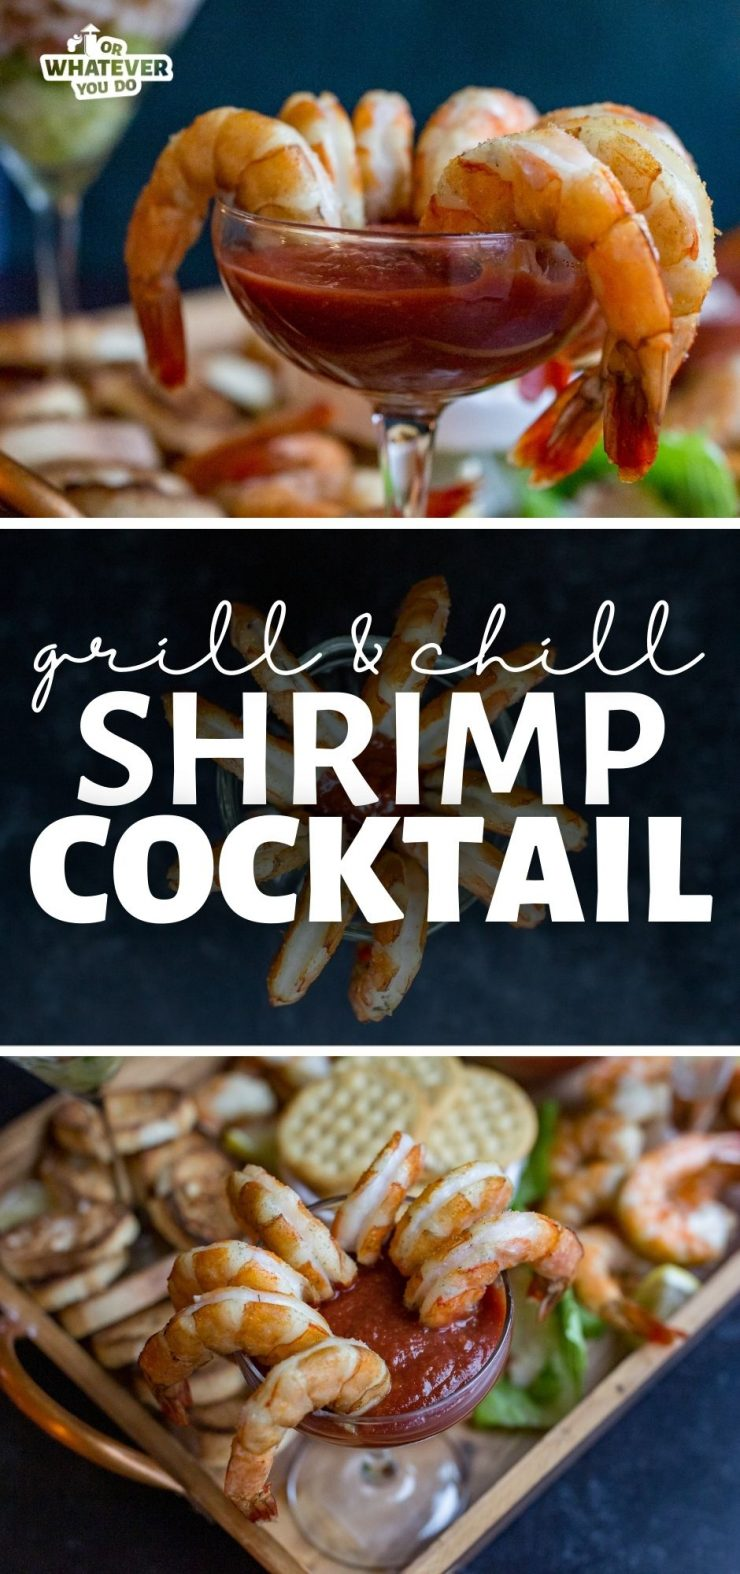 Grill & Chill Shrimp Cocktail